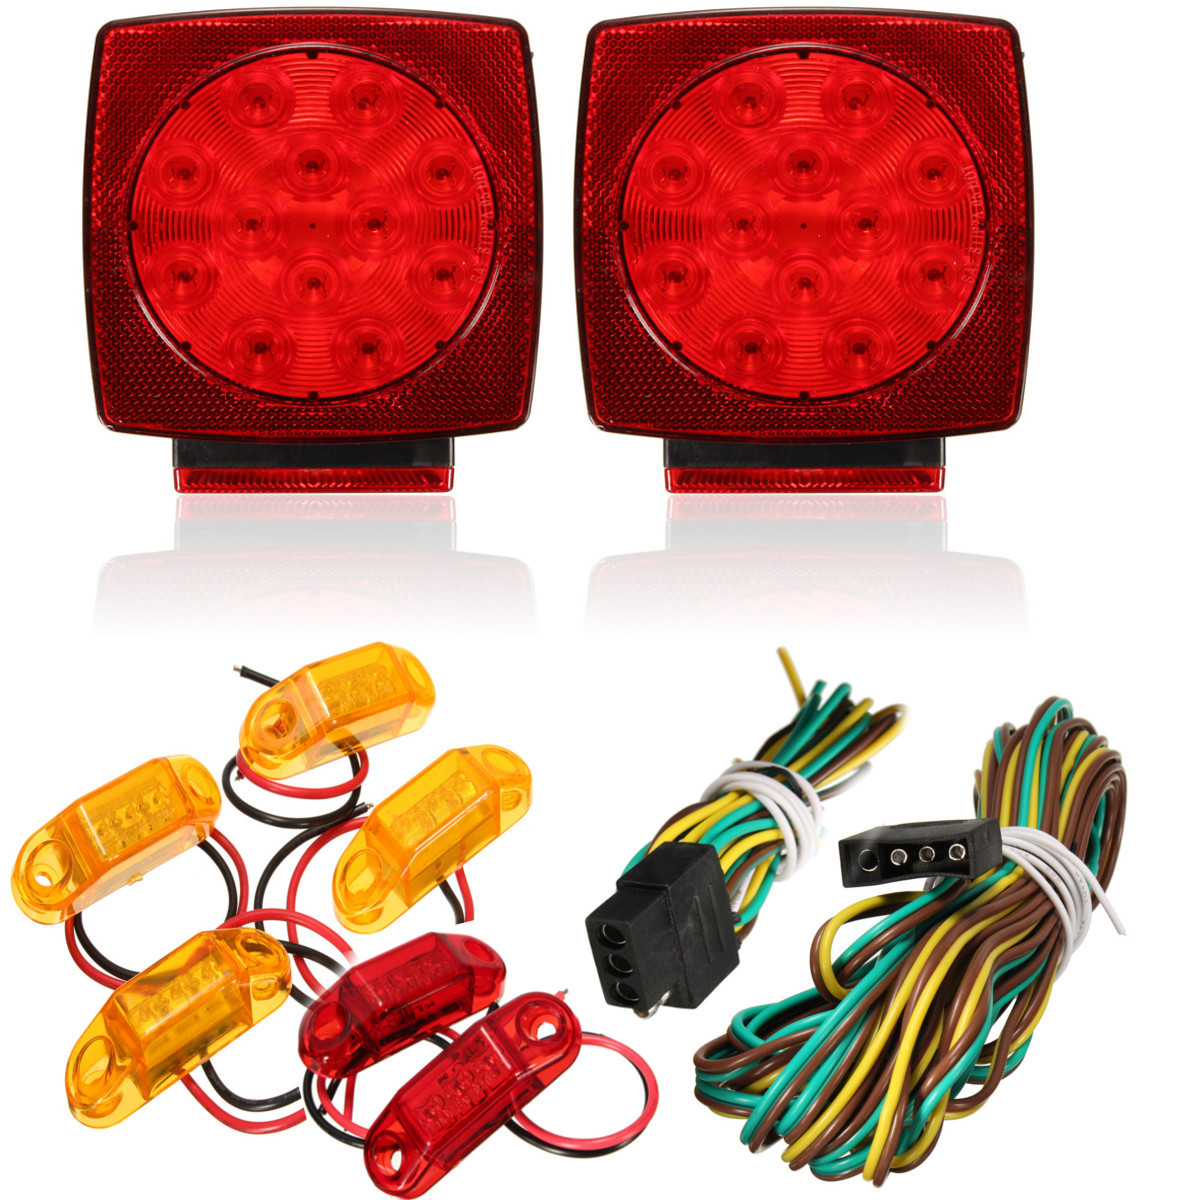 hight resolution of 4 x led amber surface mount marker clearance lights 2 x led red surface mount marker clearance lights 1 x 23 6 wire harness with 4 way trailer end plug